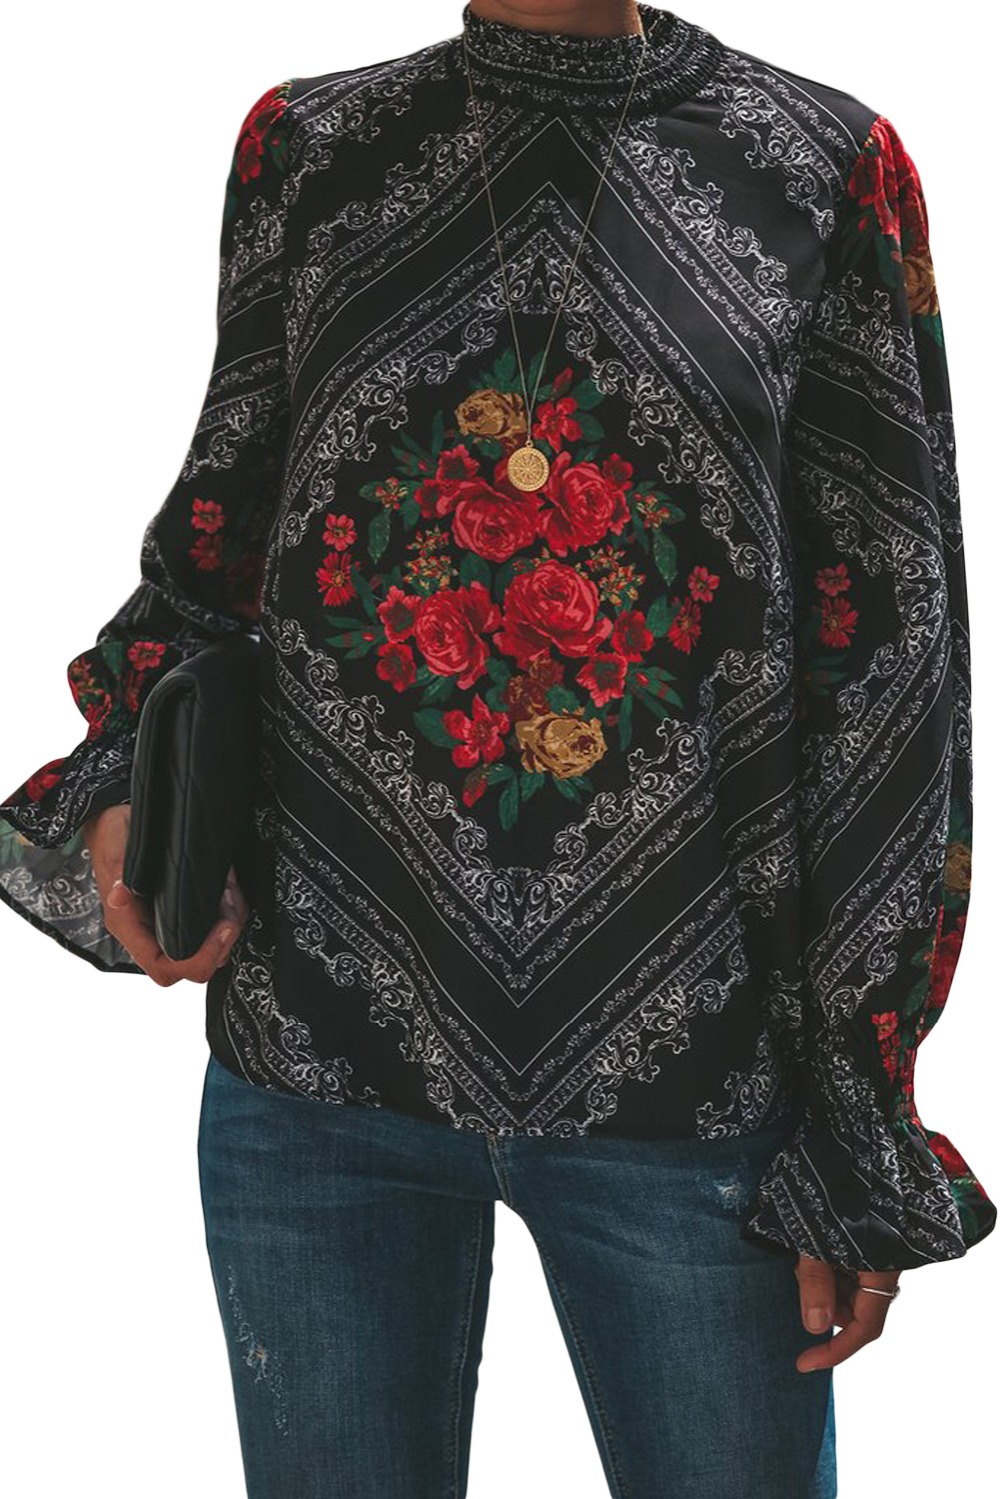 Gothic-Red-Rose-Print-Smocked-Long-Sleeve-Blouse-LC251632-3-1